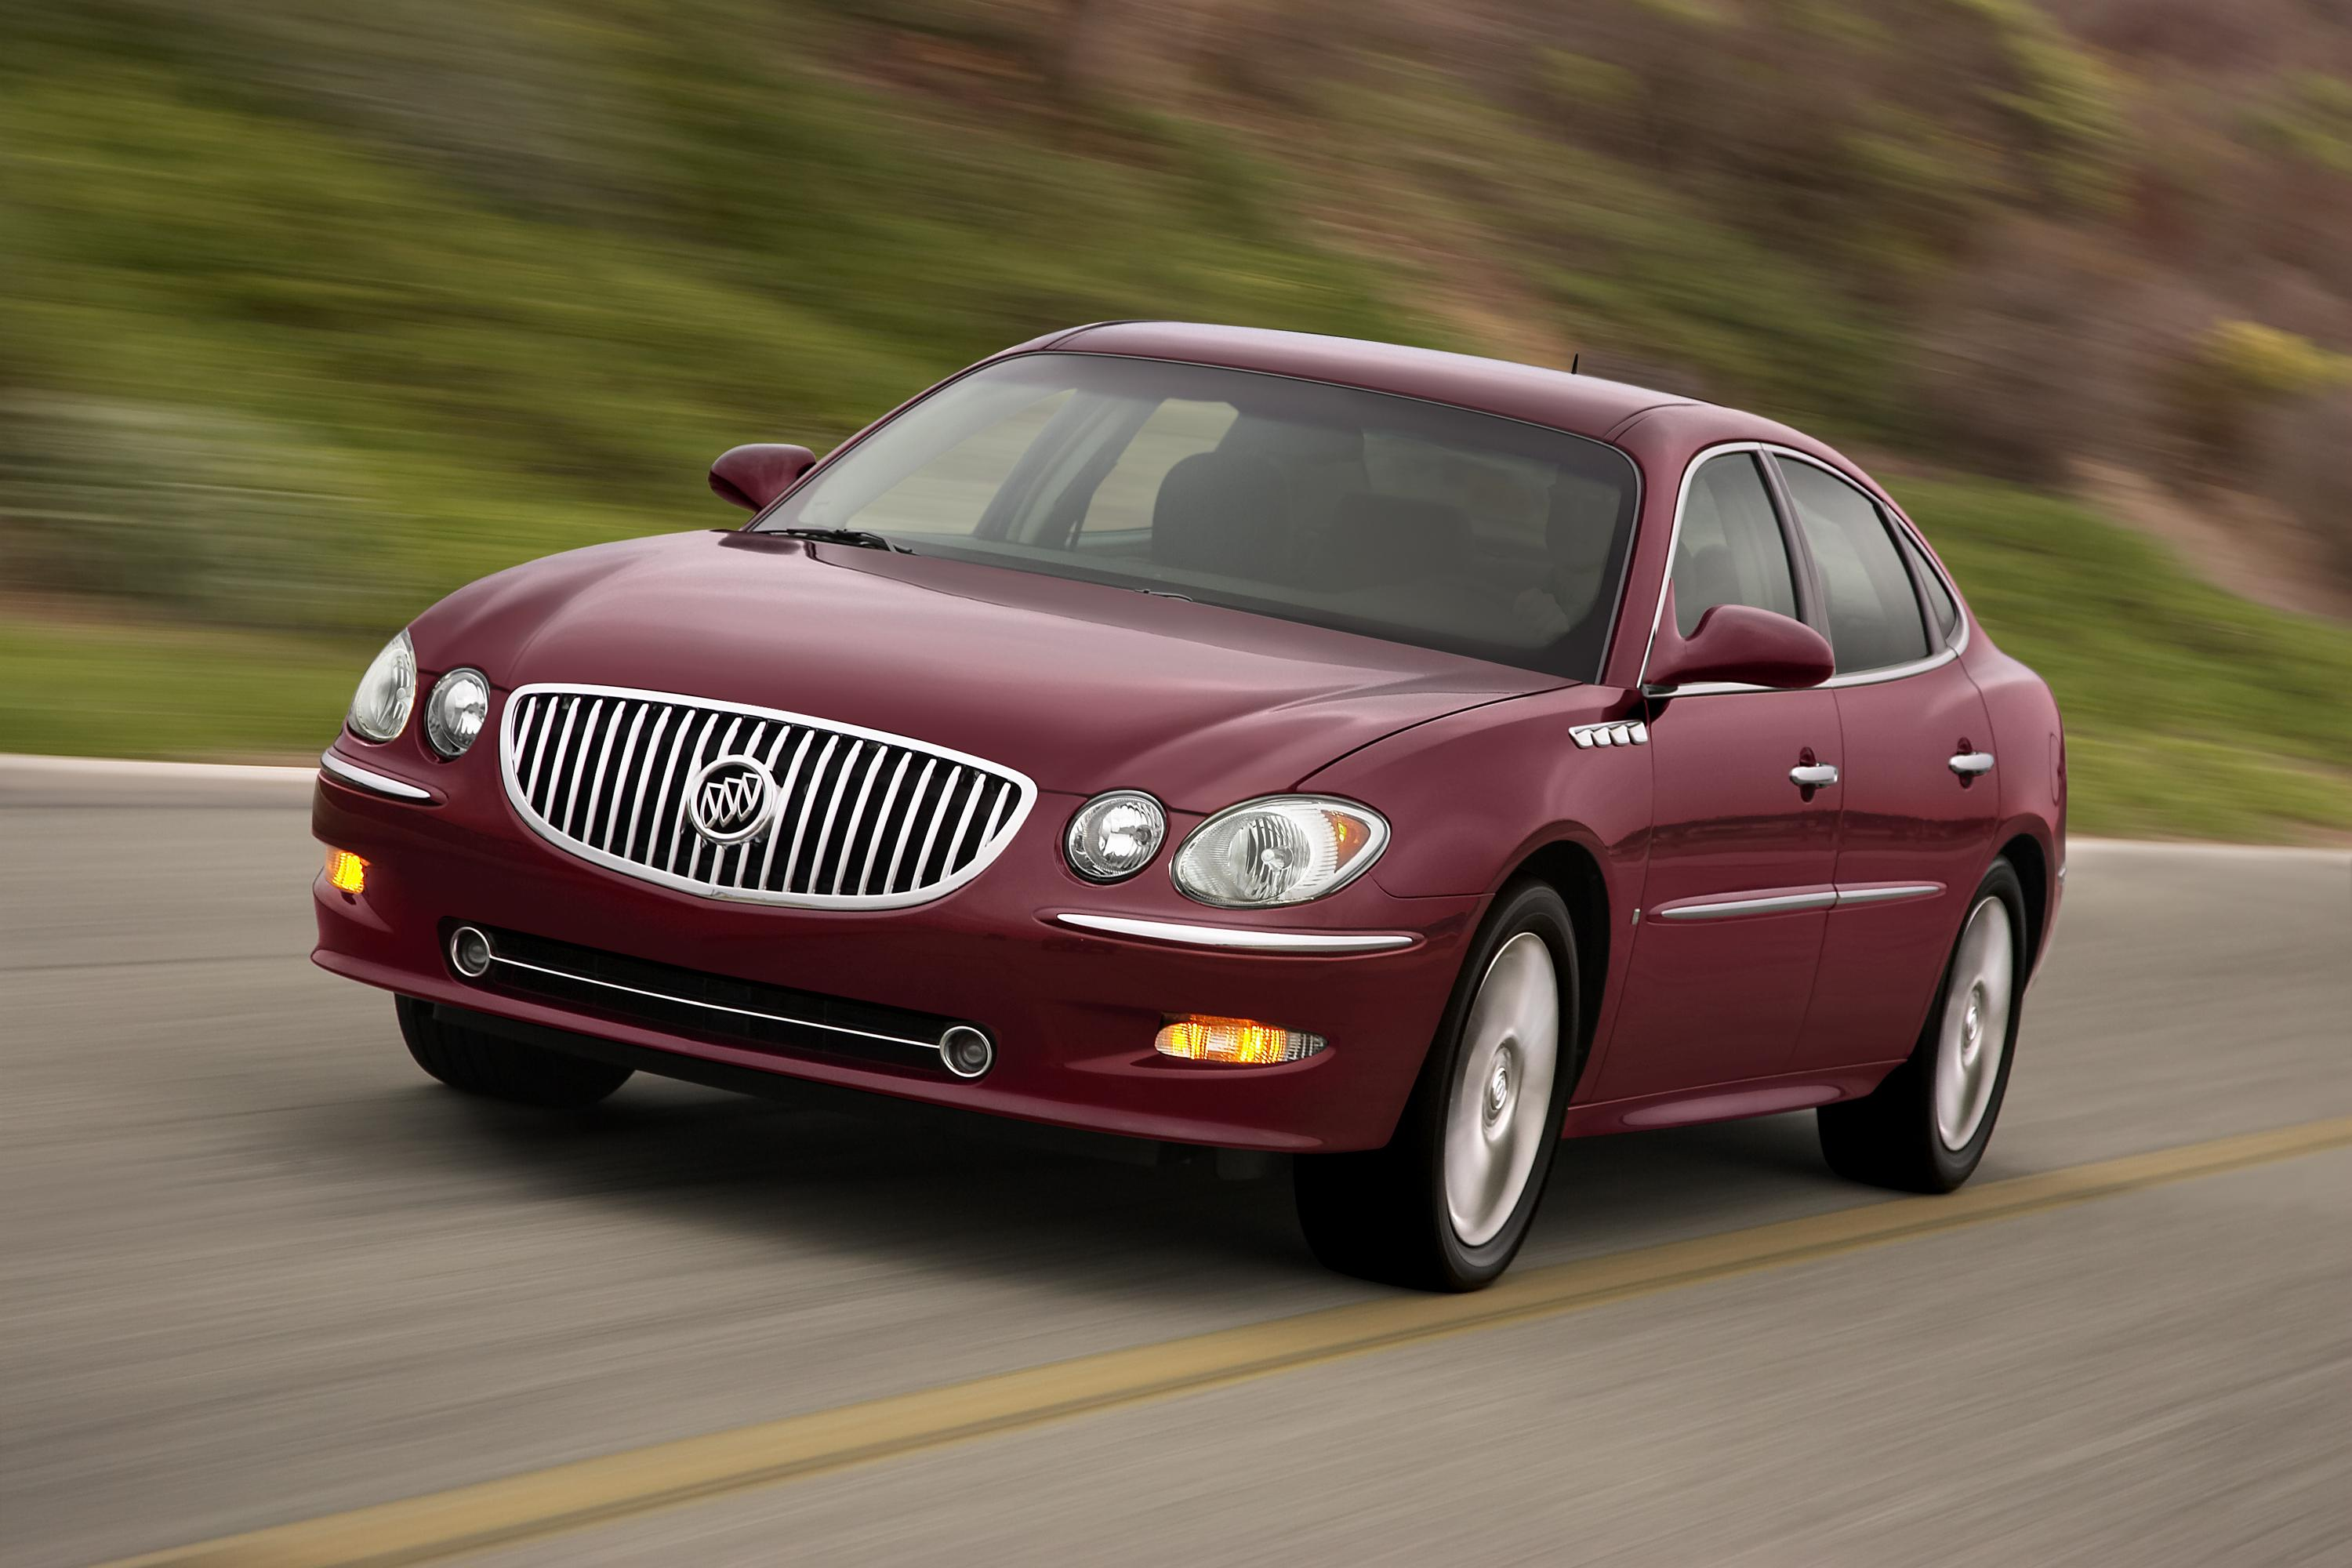 Buick LaCrosse: Driving on Snow or Ice